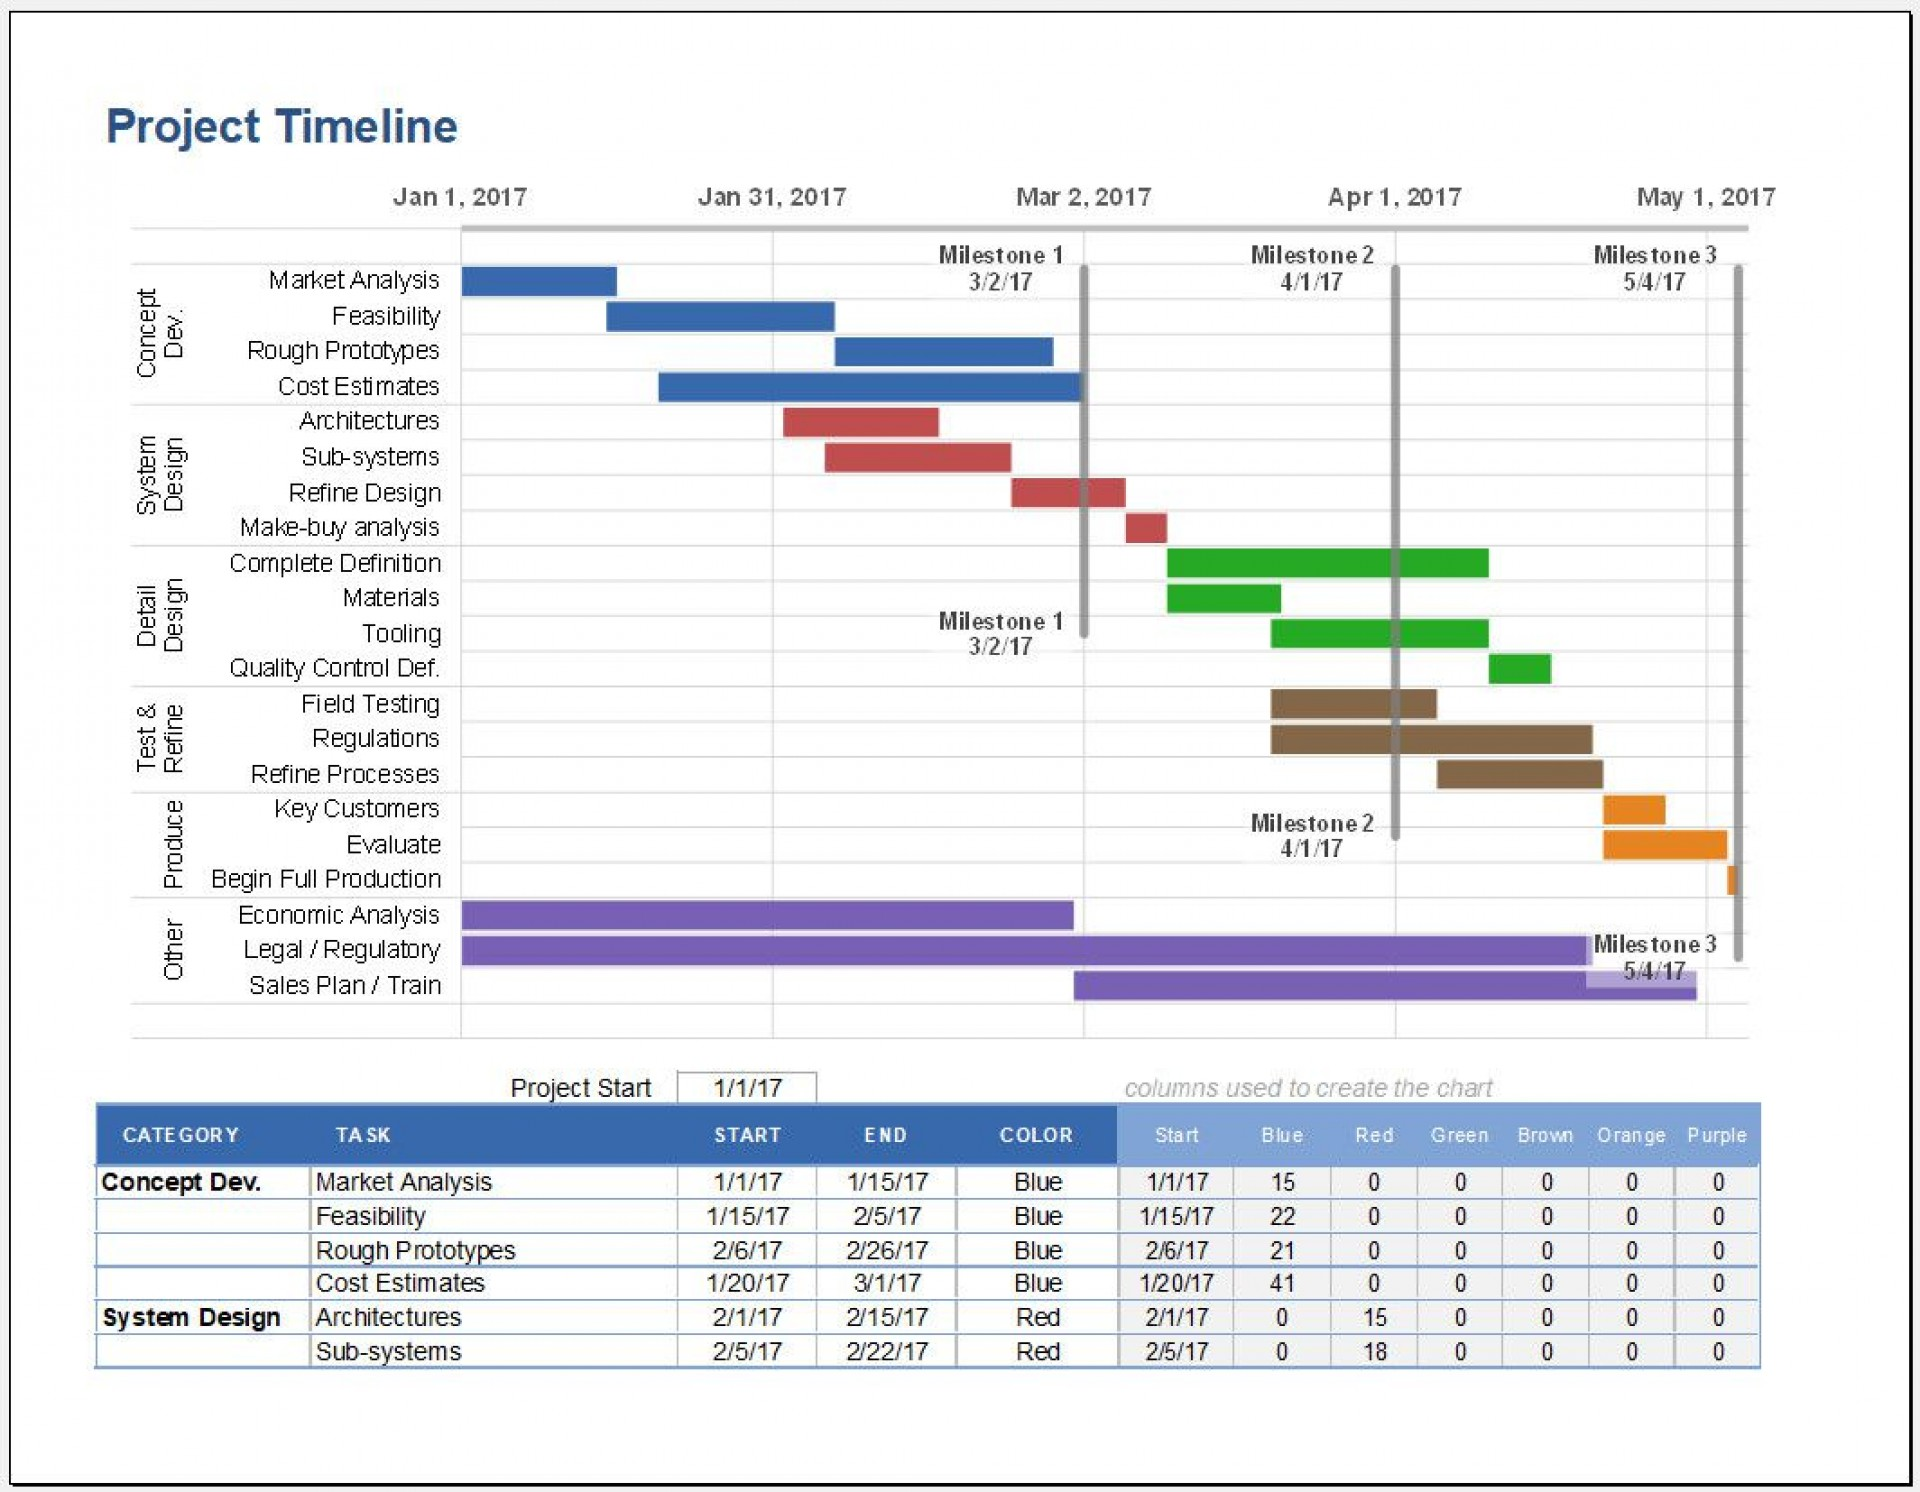 009 Surprising Excel Project Timeline Template Image  2020 Xl Tutorial1920